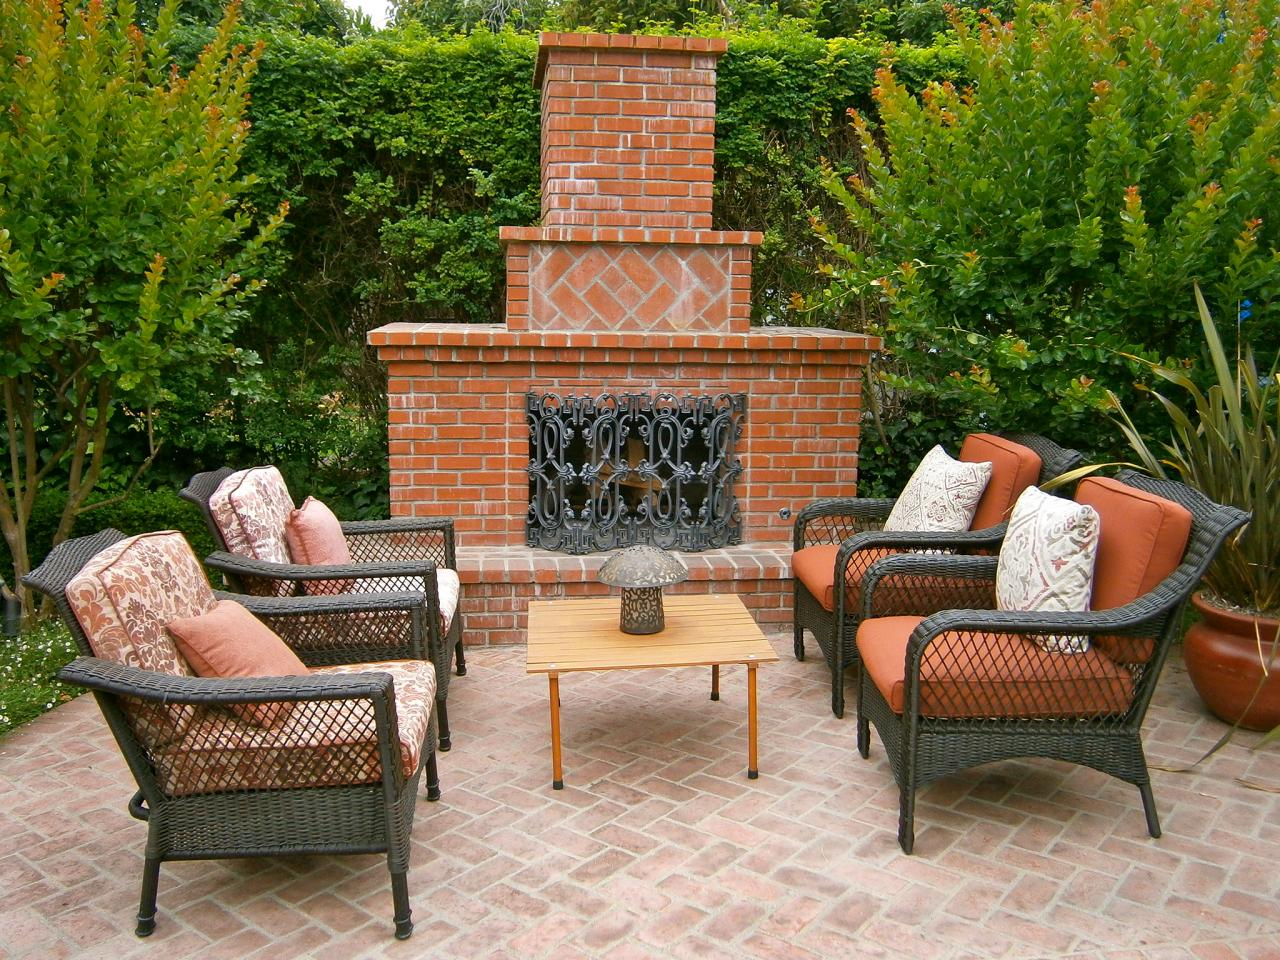 Outdoor Brick Fireplace Kits Fireplace Design Ideas